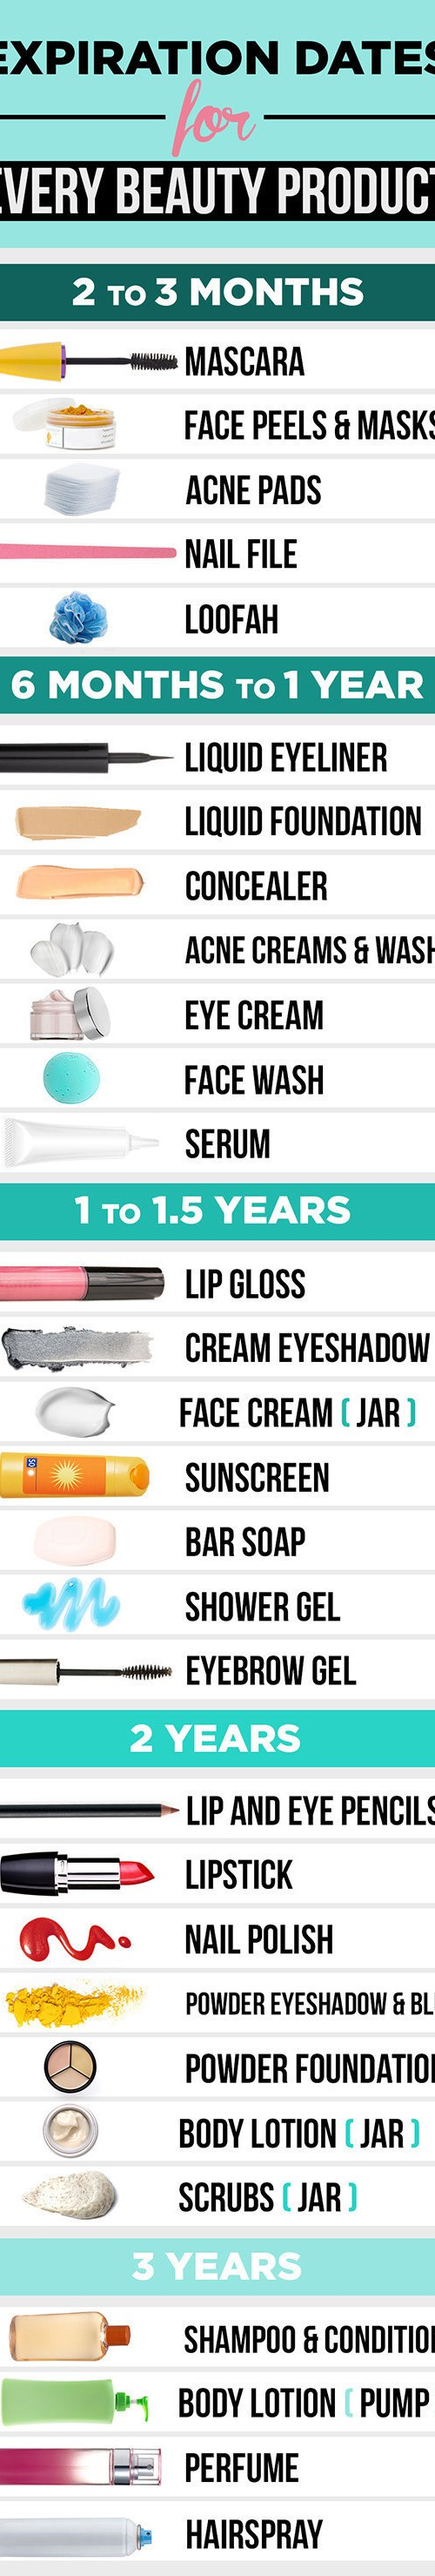 Know the Expiration Date of Each Beauty Product